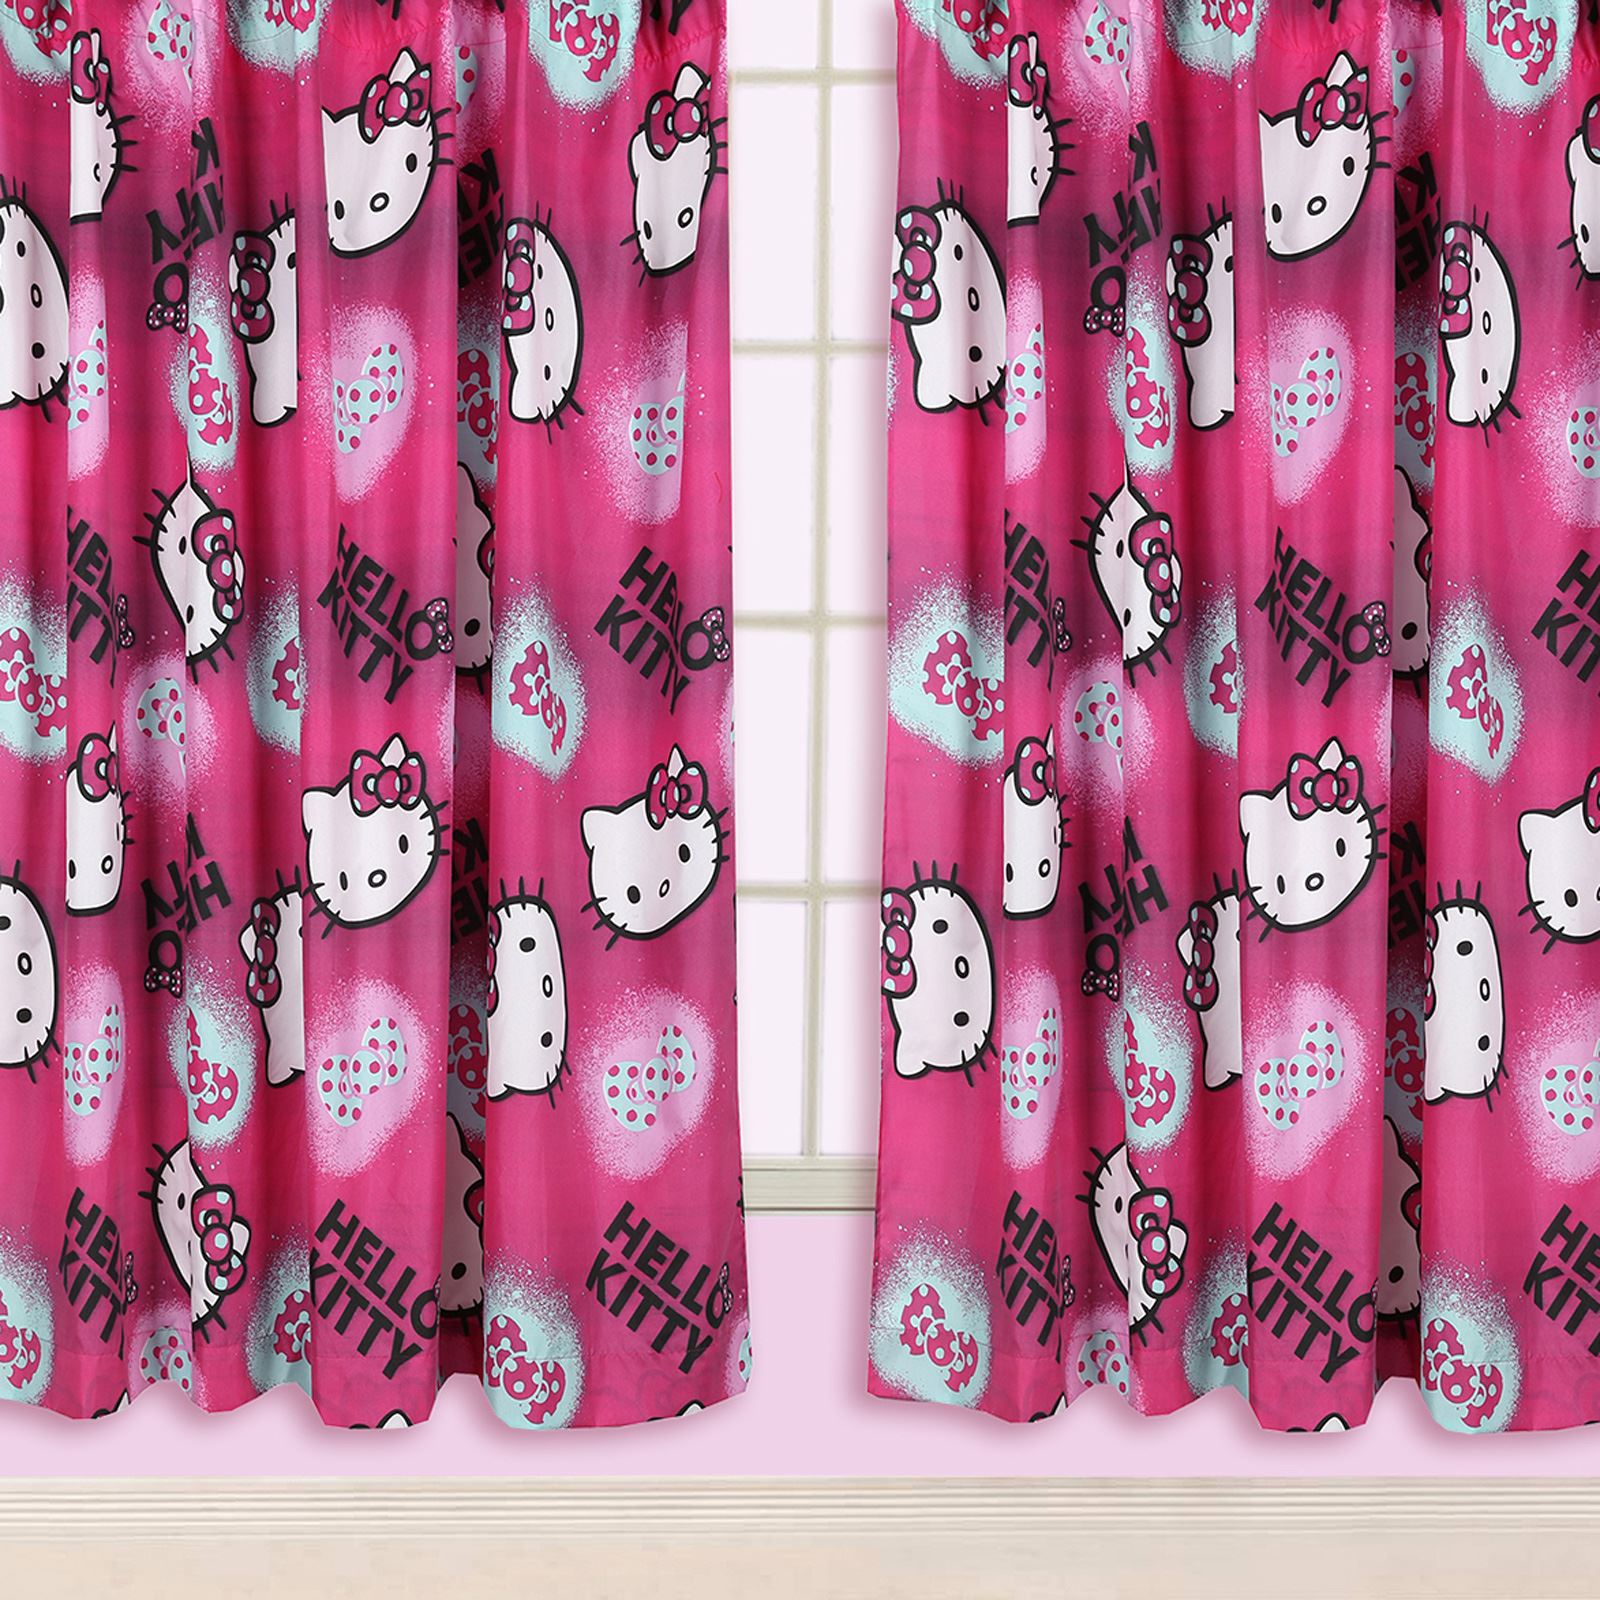 Hello kitty bedroom ireland - Hello Kitty Ink Matching Bedding And Bedroom Accessories